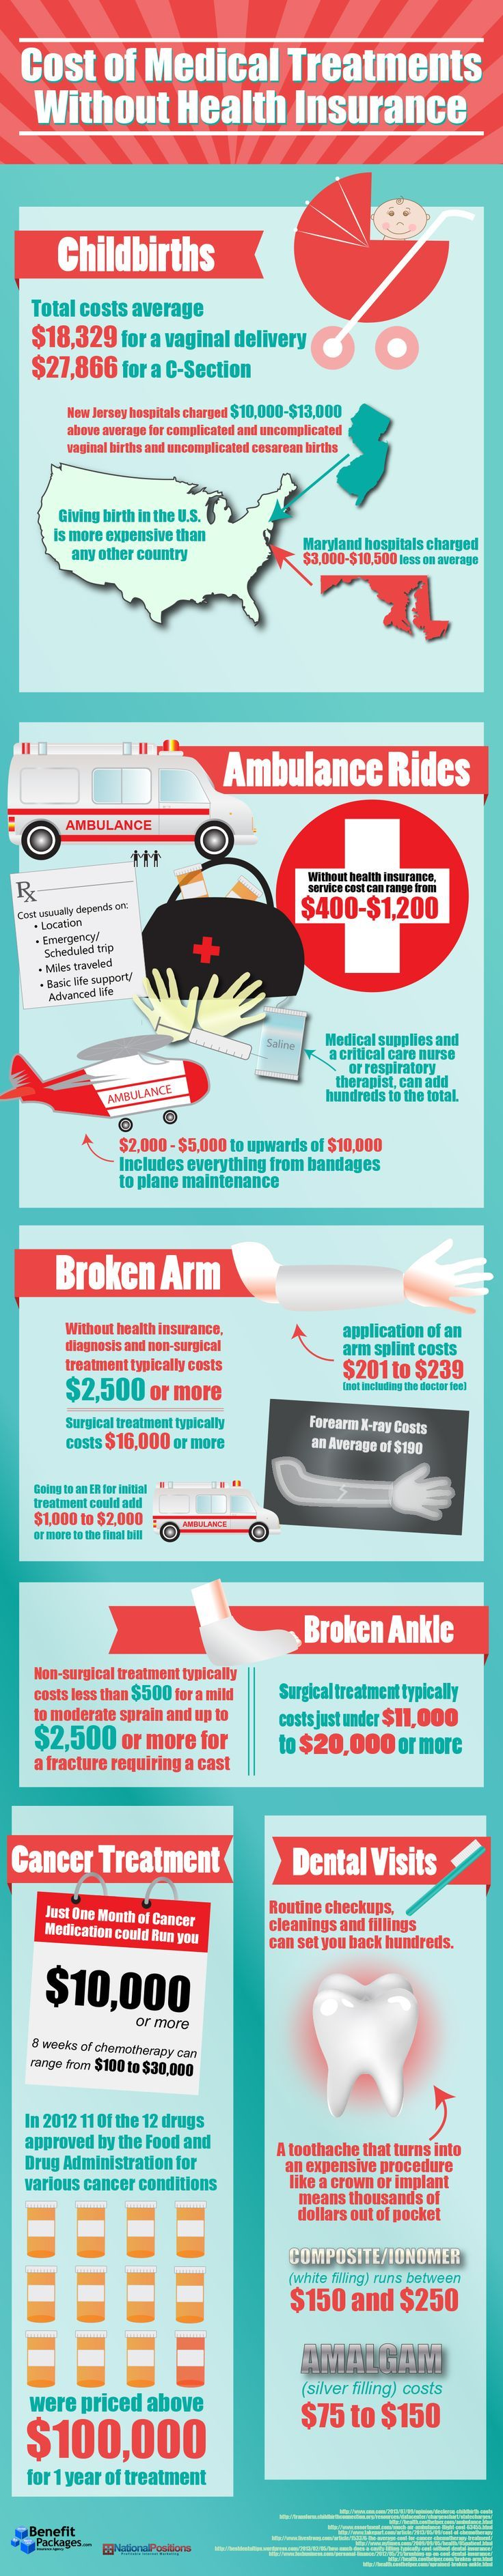 Cost of medical treatments without health insurance